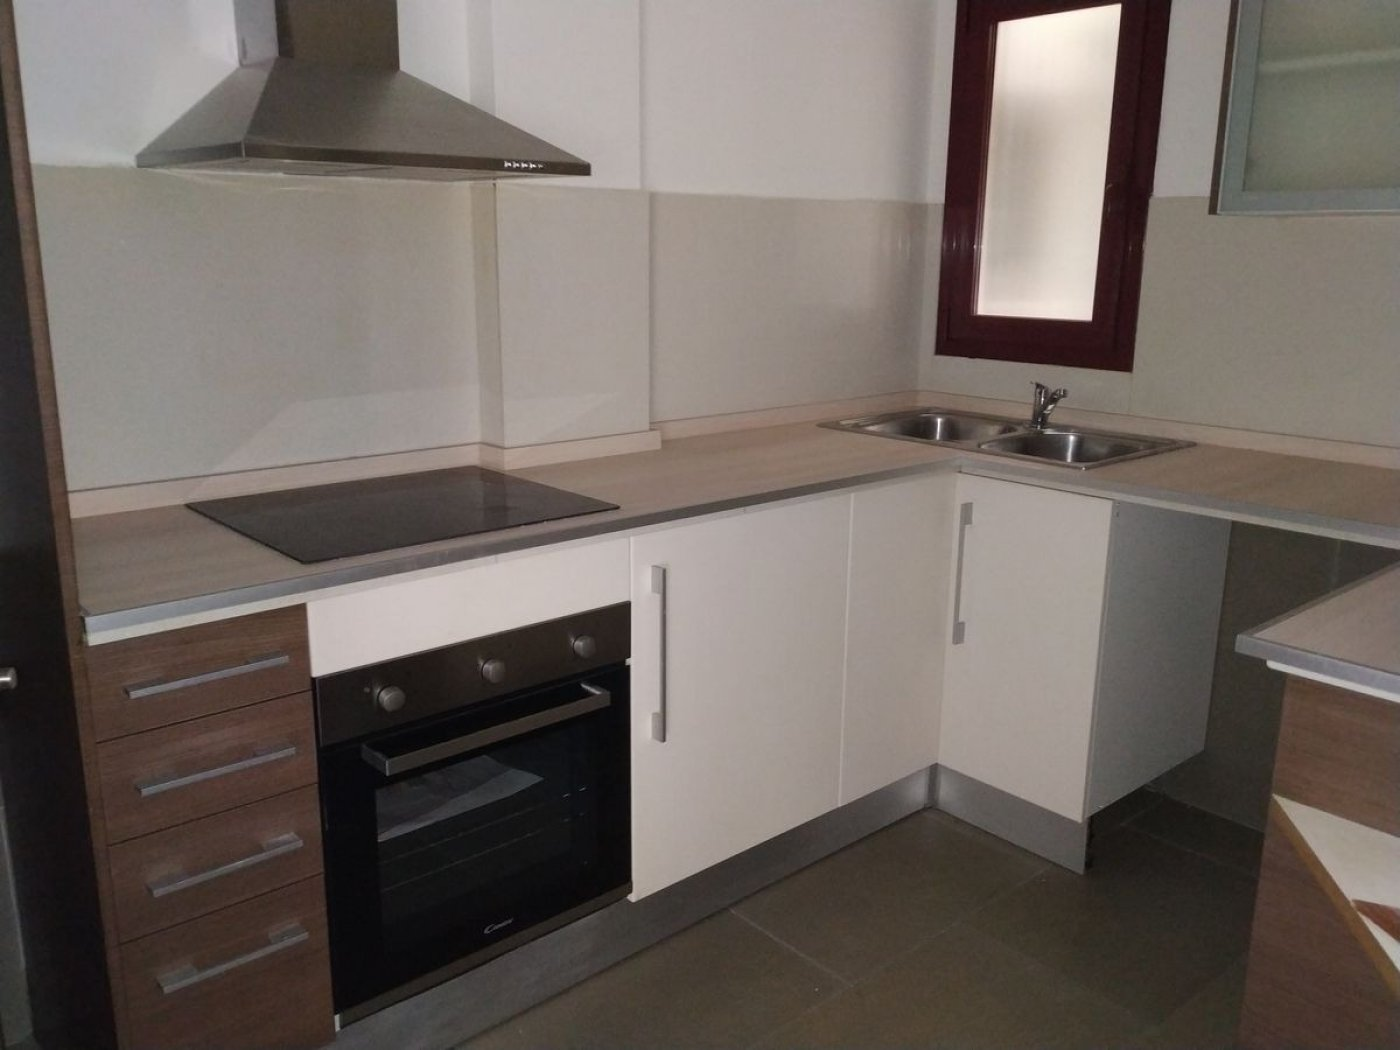 Flat for sale in Valletes, Amposta